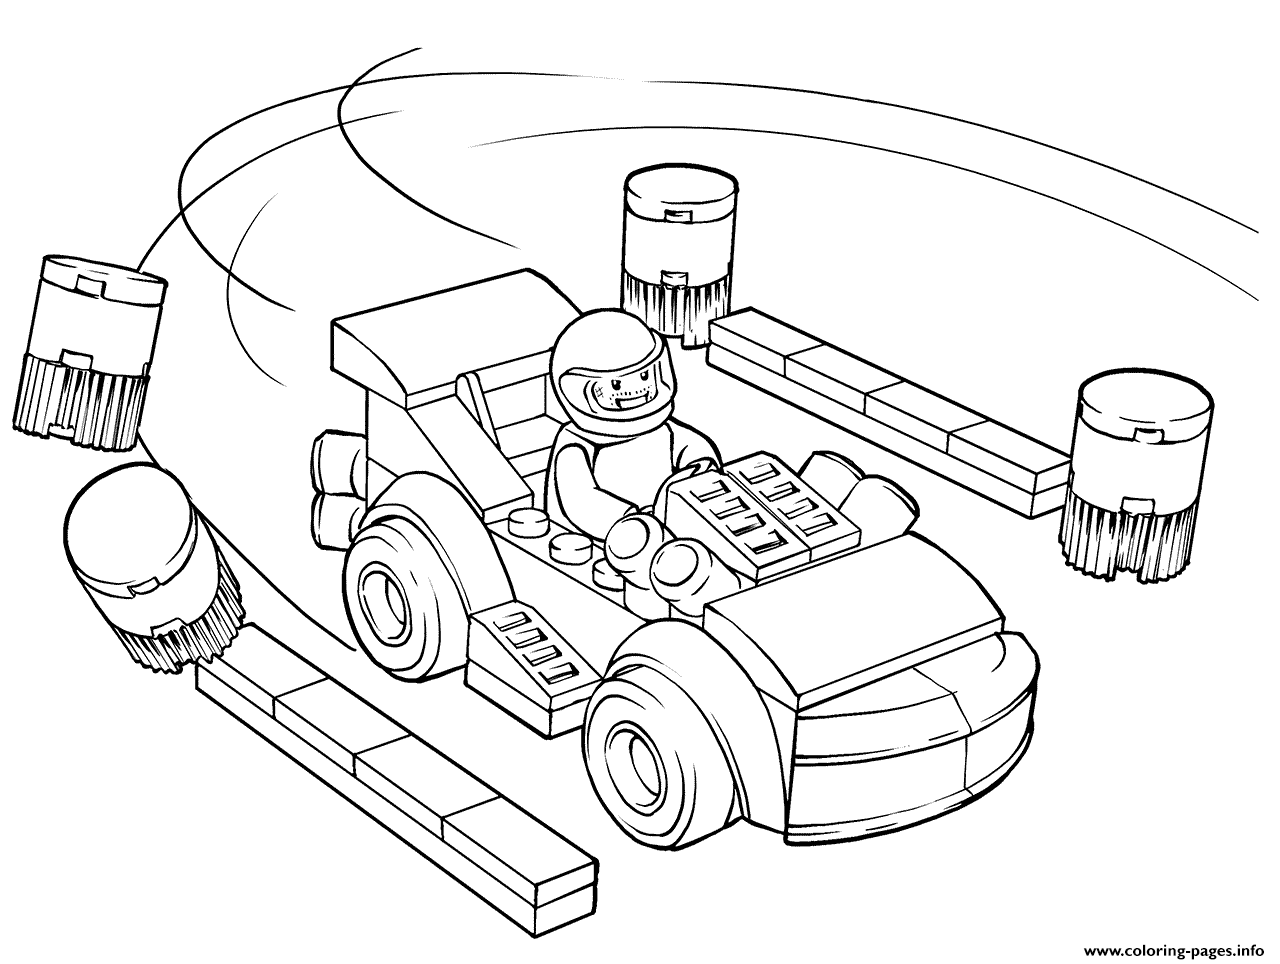 lego cars colouring pages printable lego city coloring pages for kids clipart pages cars colouring lego